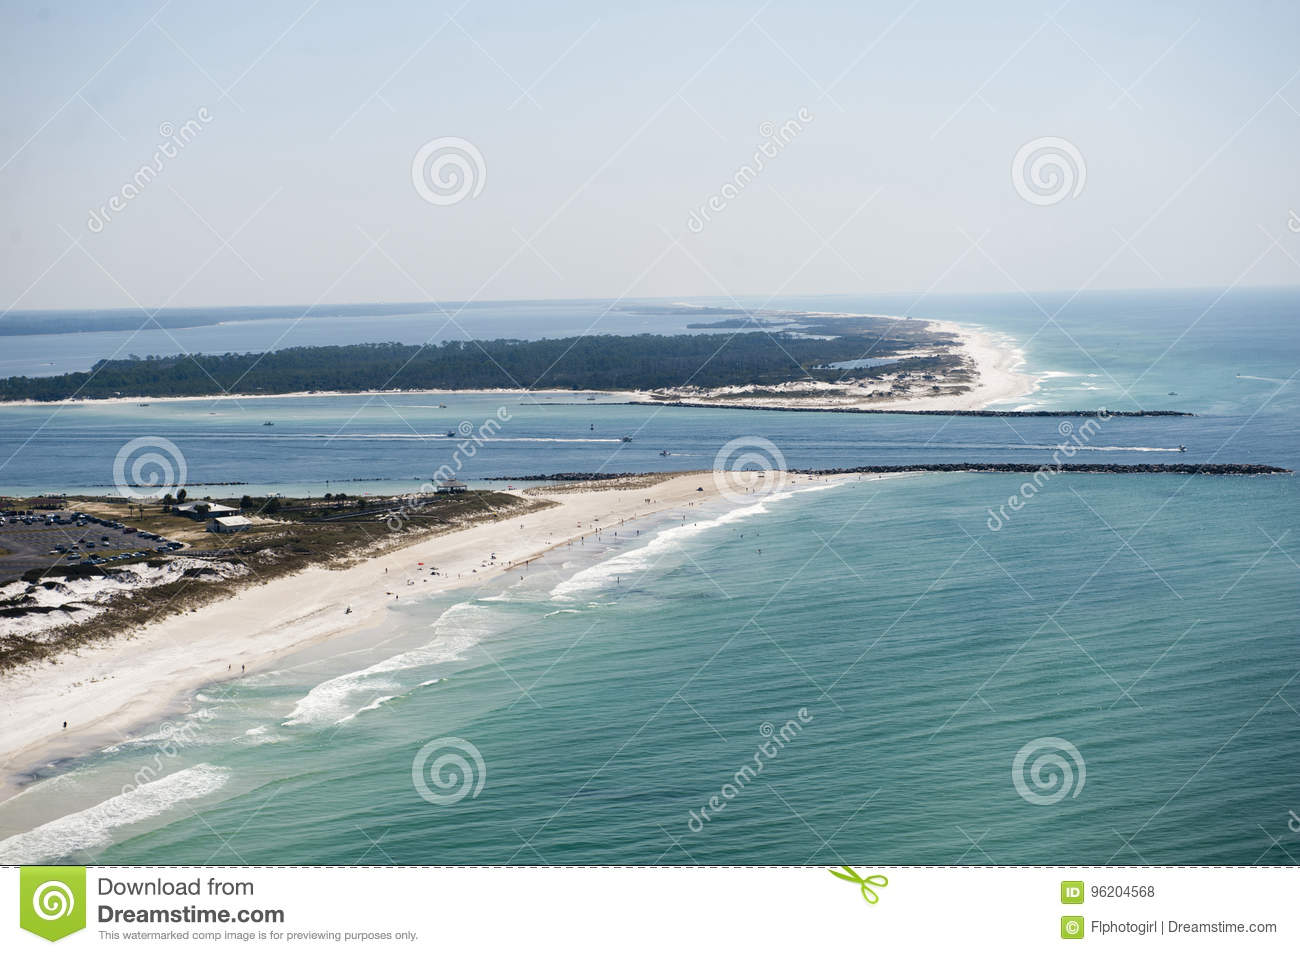 An aerial view of the coastline of Panama City Beach Florida at St. Andrews Bay